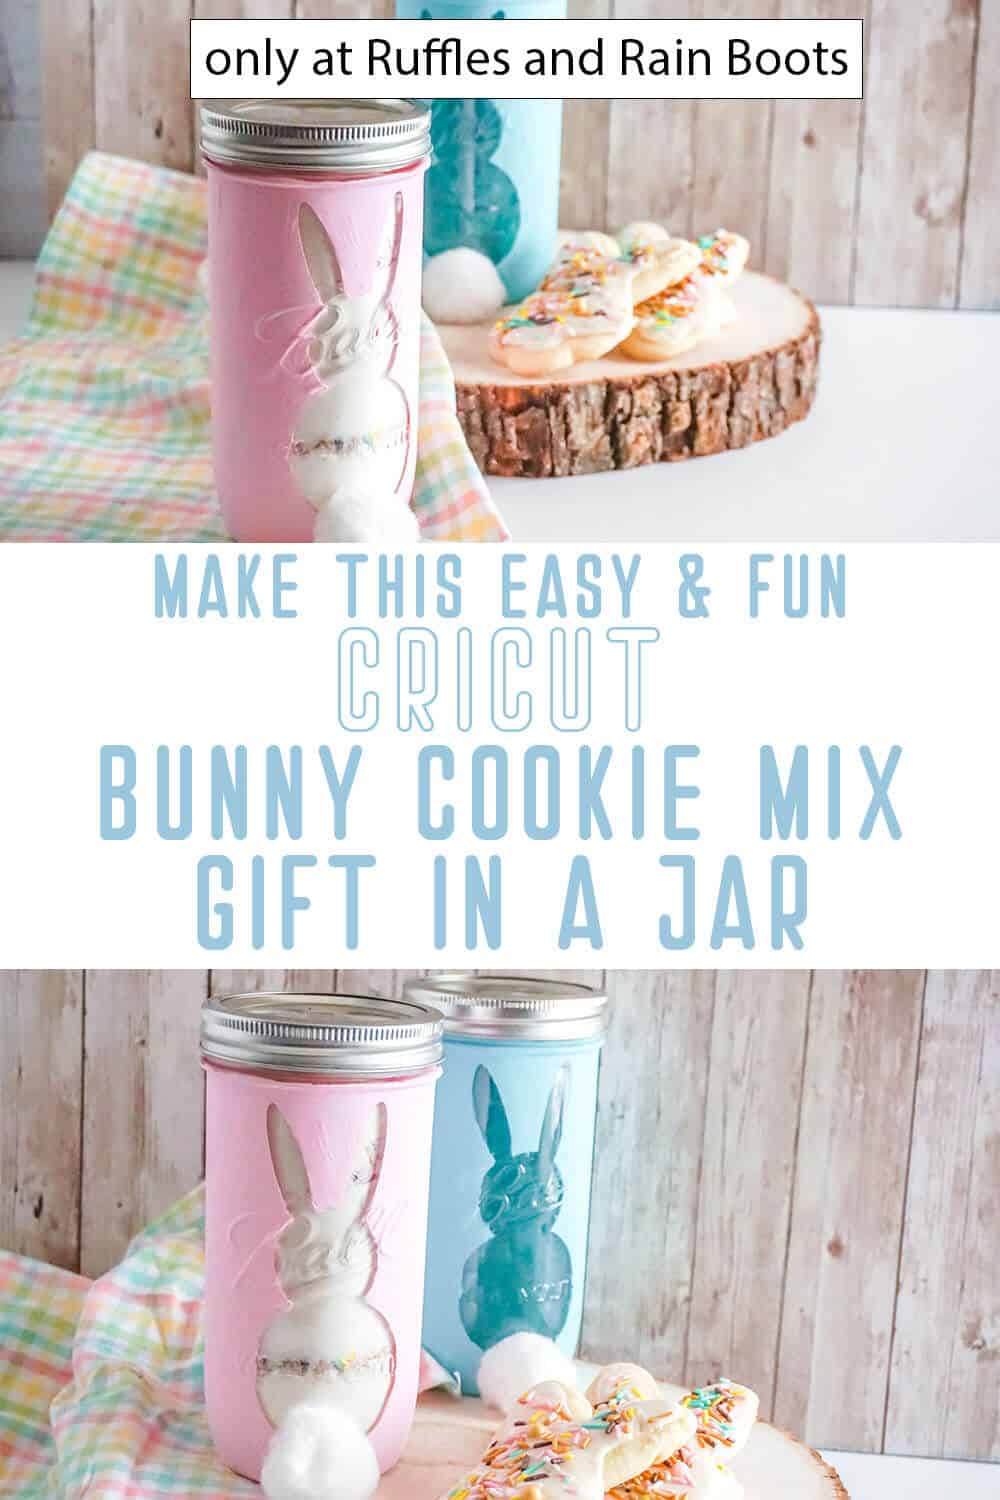 photo collage of bunny easter cookie mix gift in a jar cricut stencil with text which reads make this easy & fun cricut bunny cookie mix gift in a jar